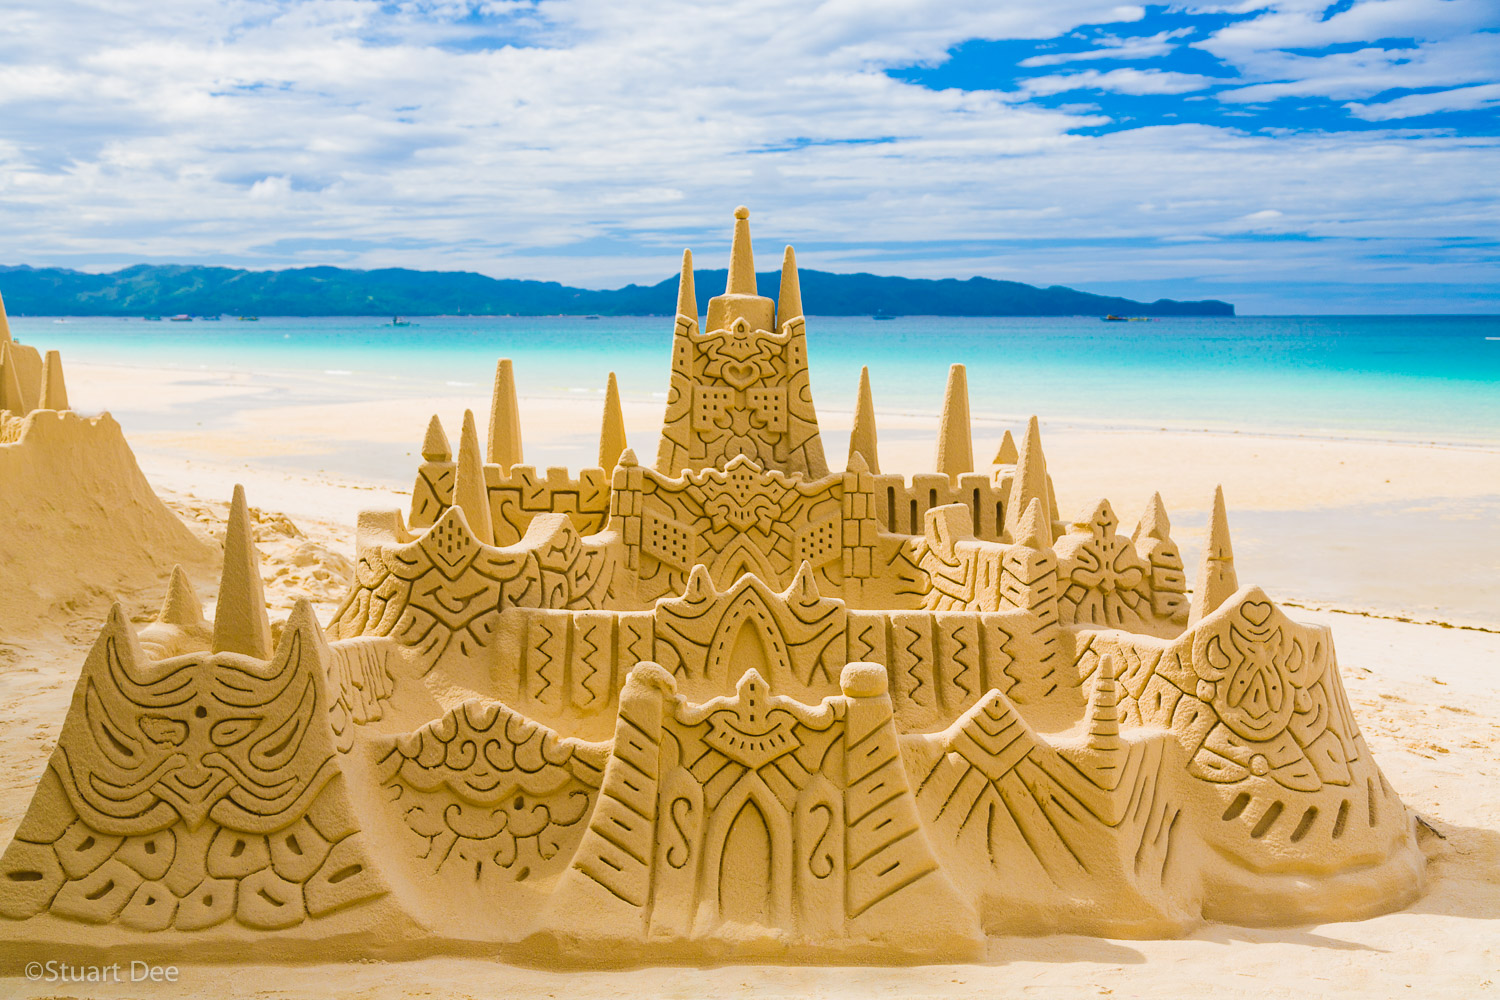 Large sandcastle on white sand beach, White Beach, Boracay, Aklan, Philippines. Boracay is the most famous beach in the Philippines, ranked as one of the best in the world.